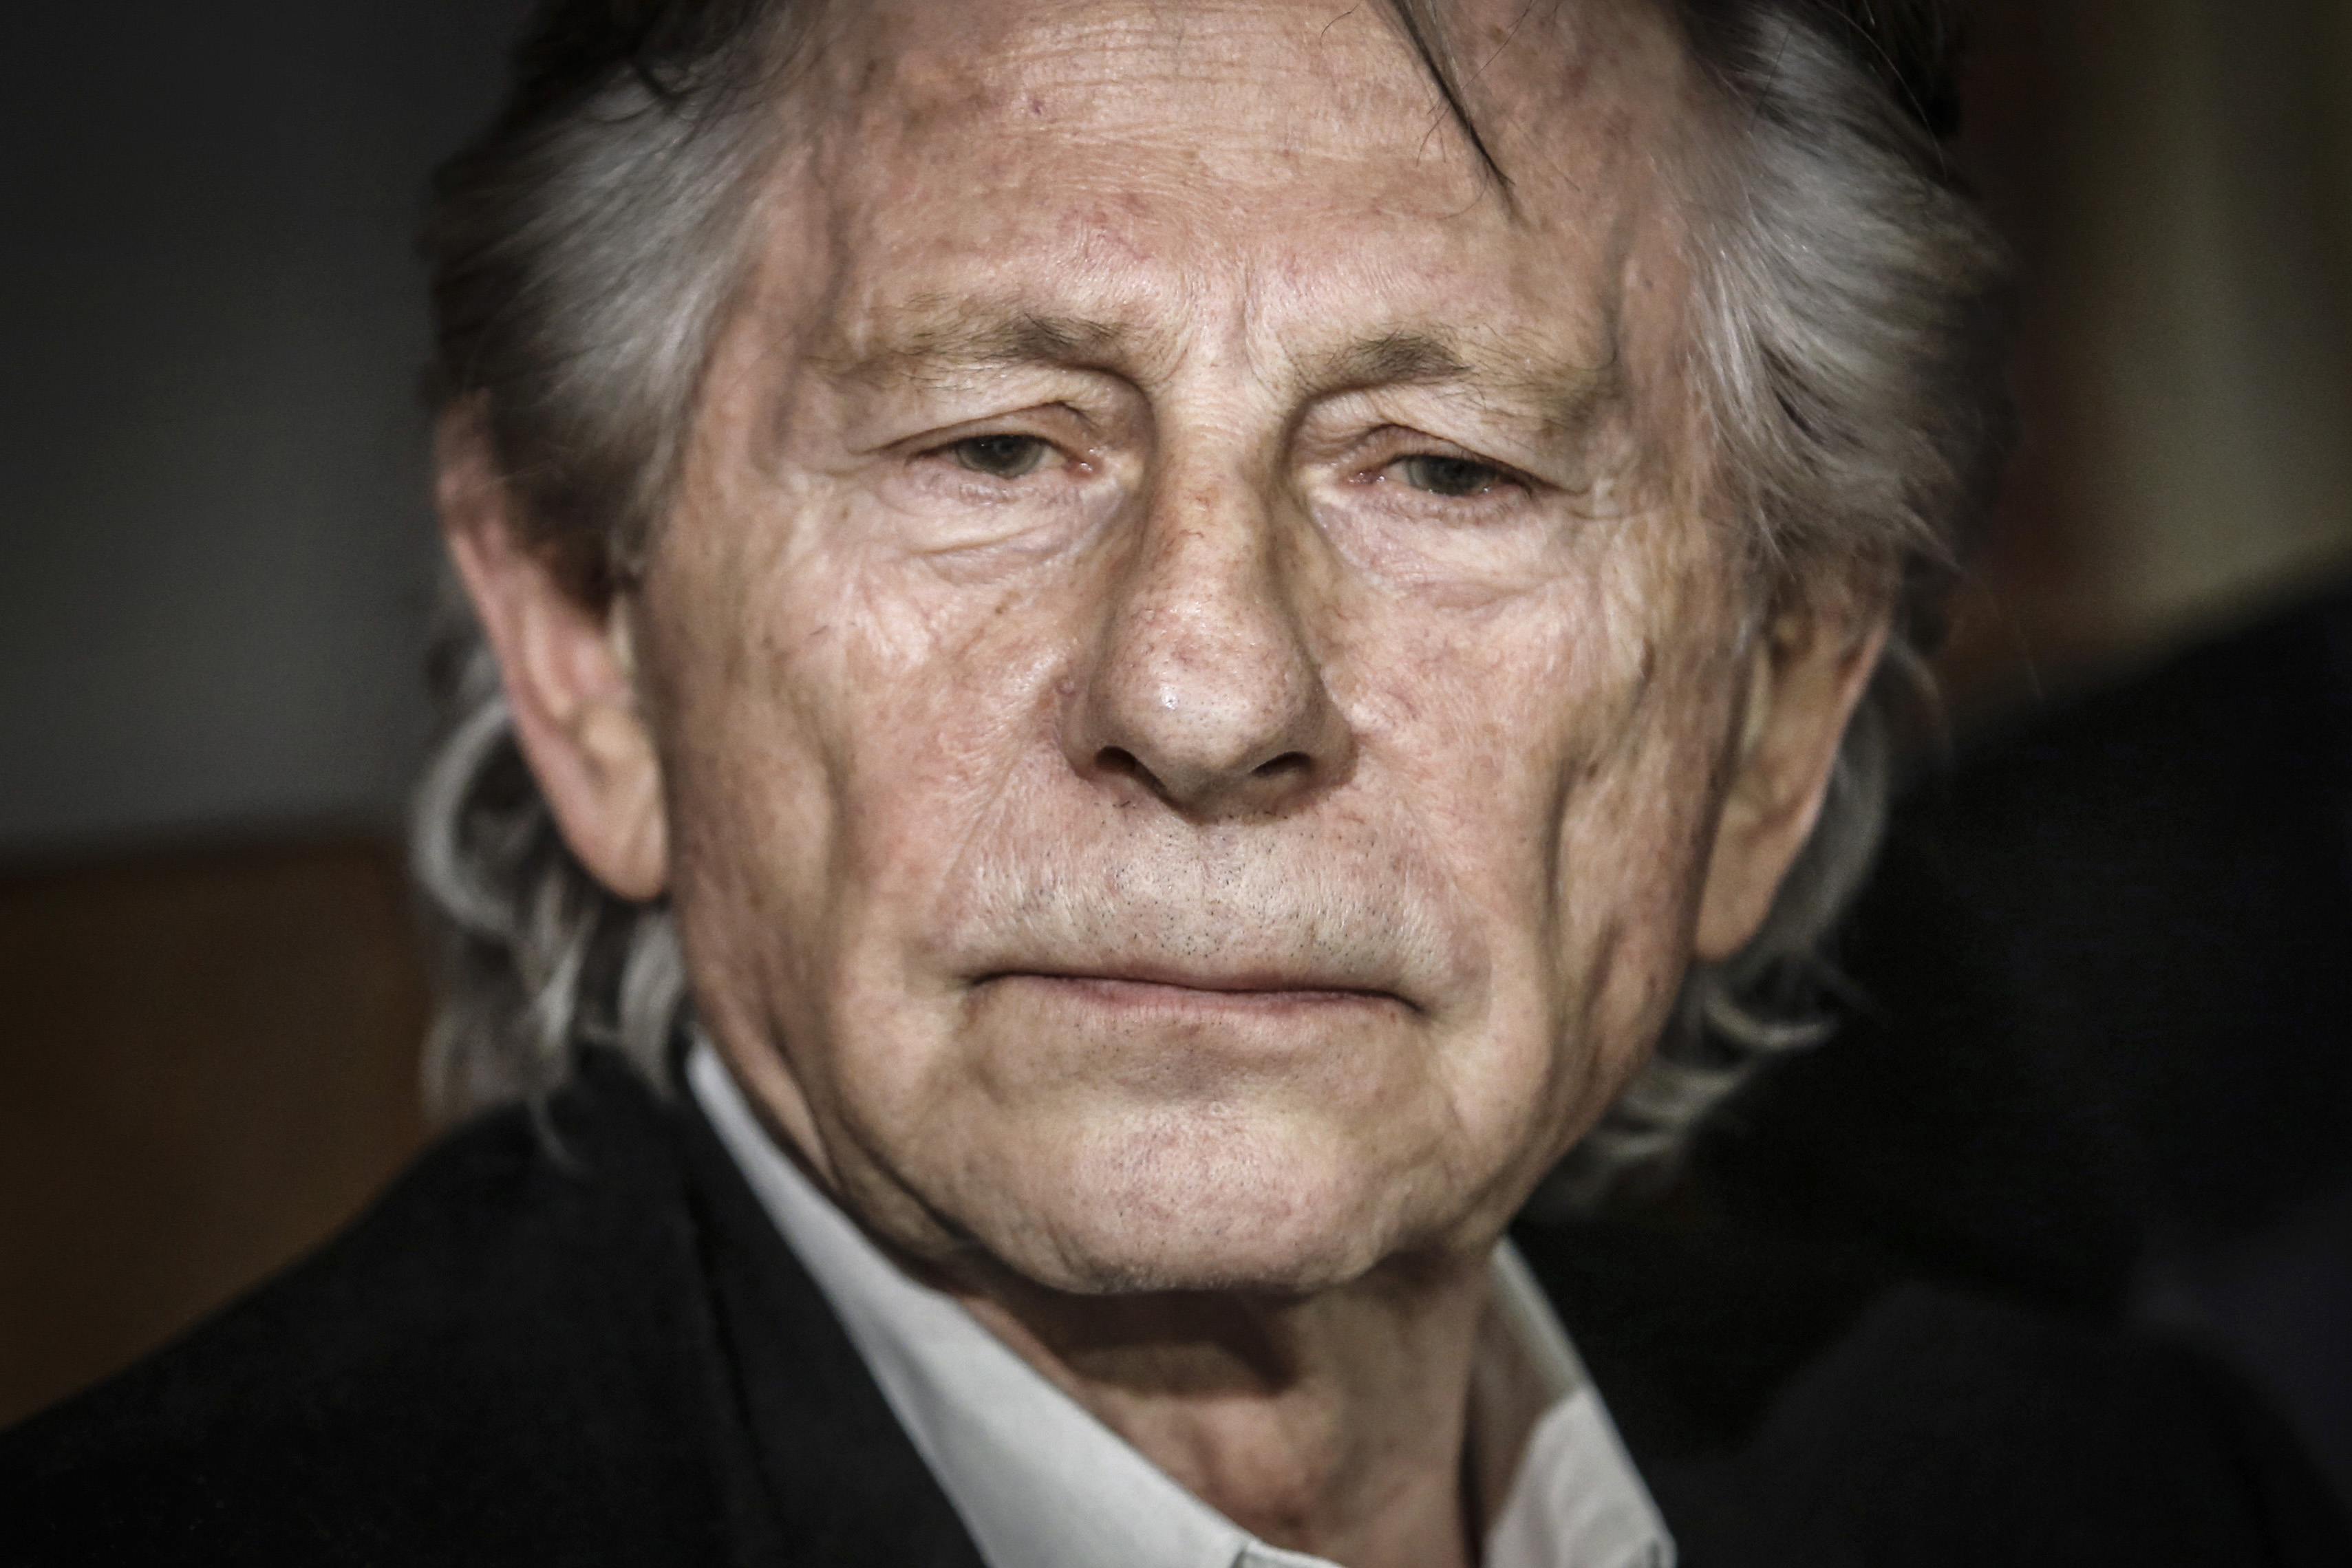 Roman Polanski talks to the media in Krakow, Poland, on October 30, 2015.